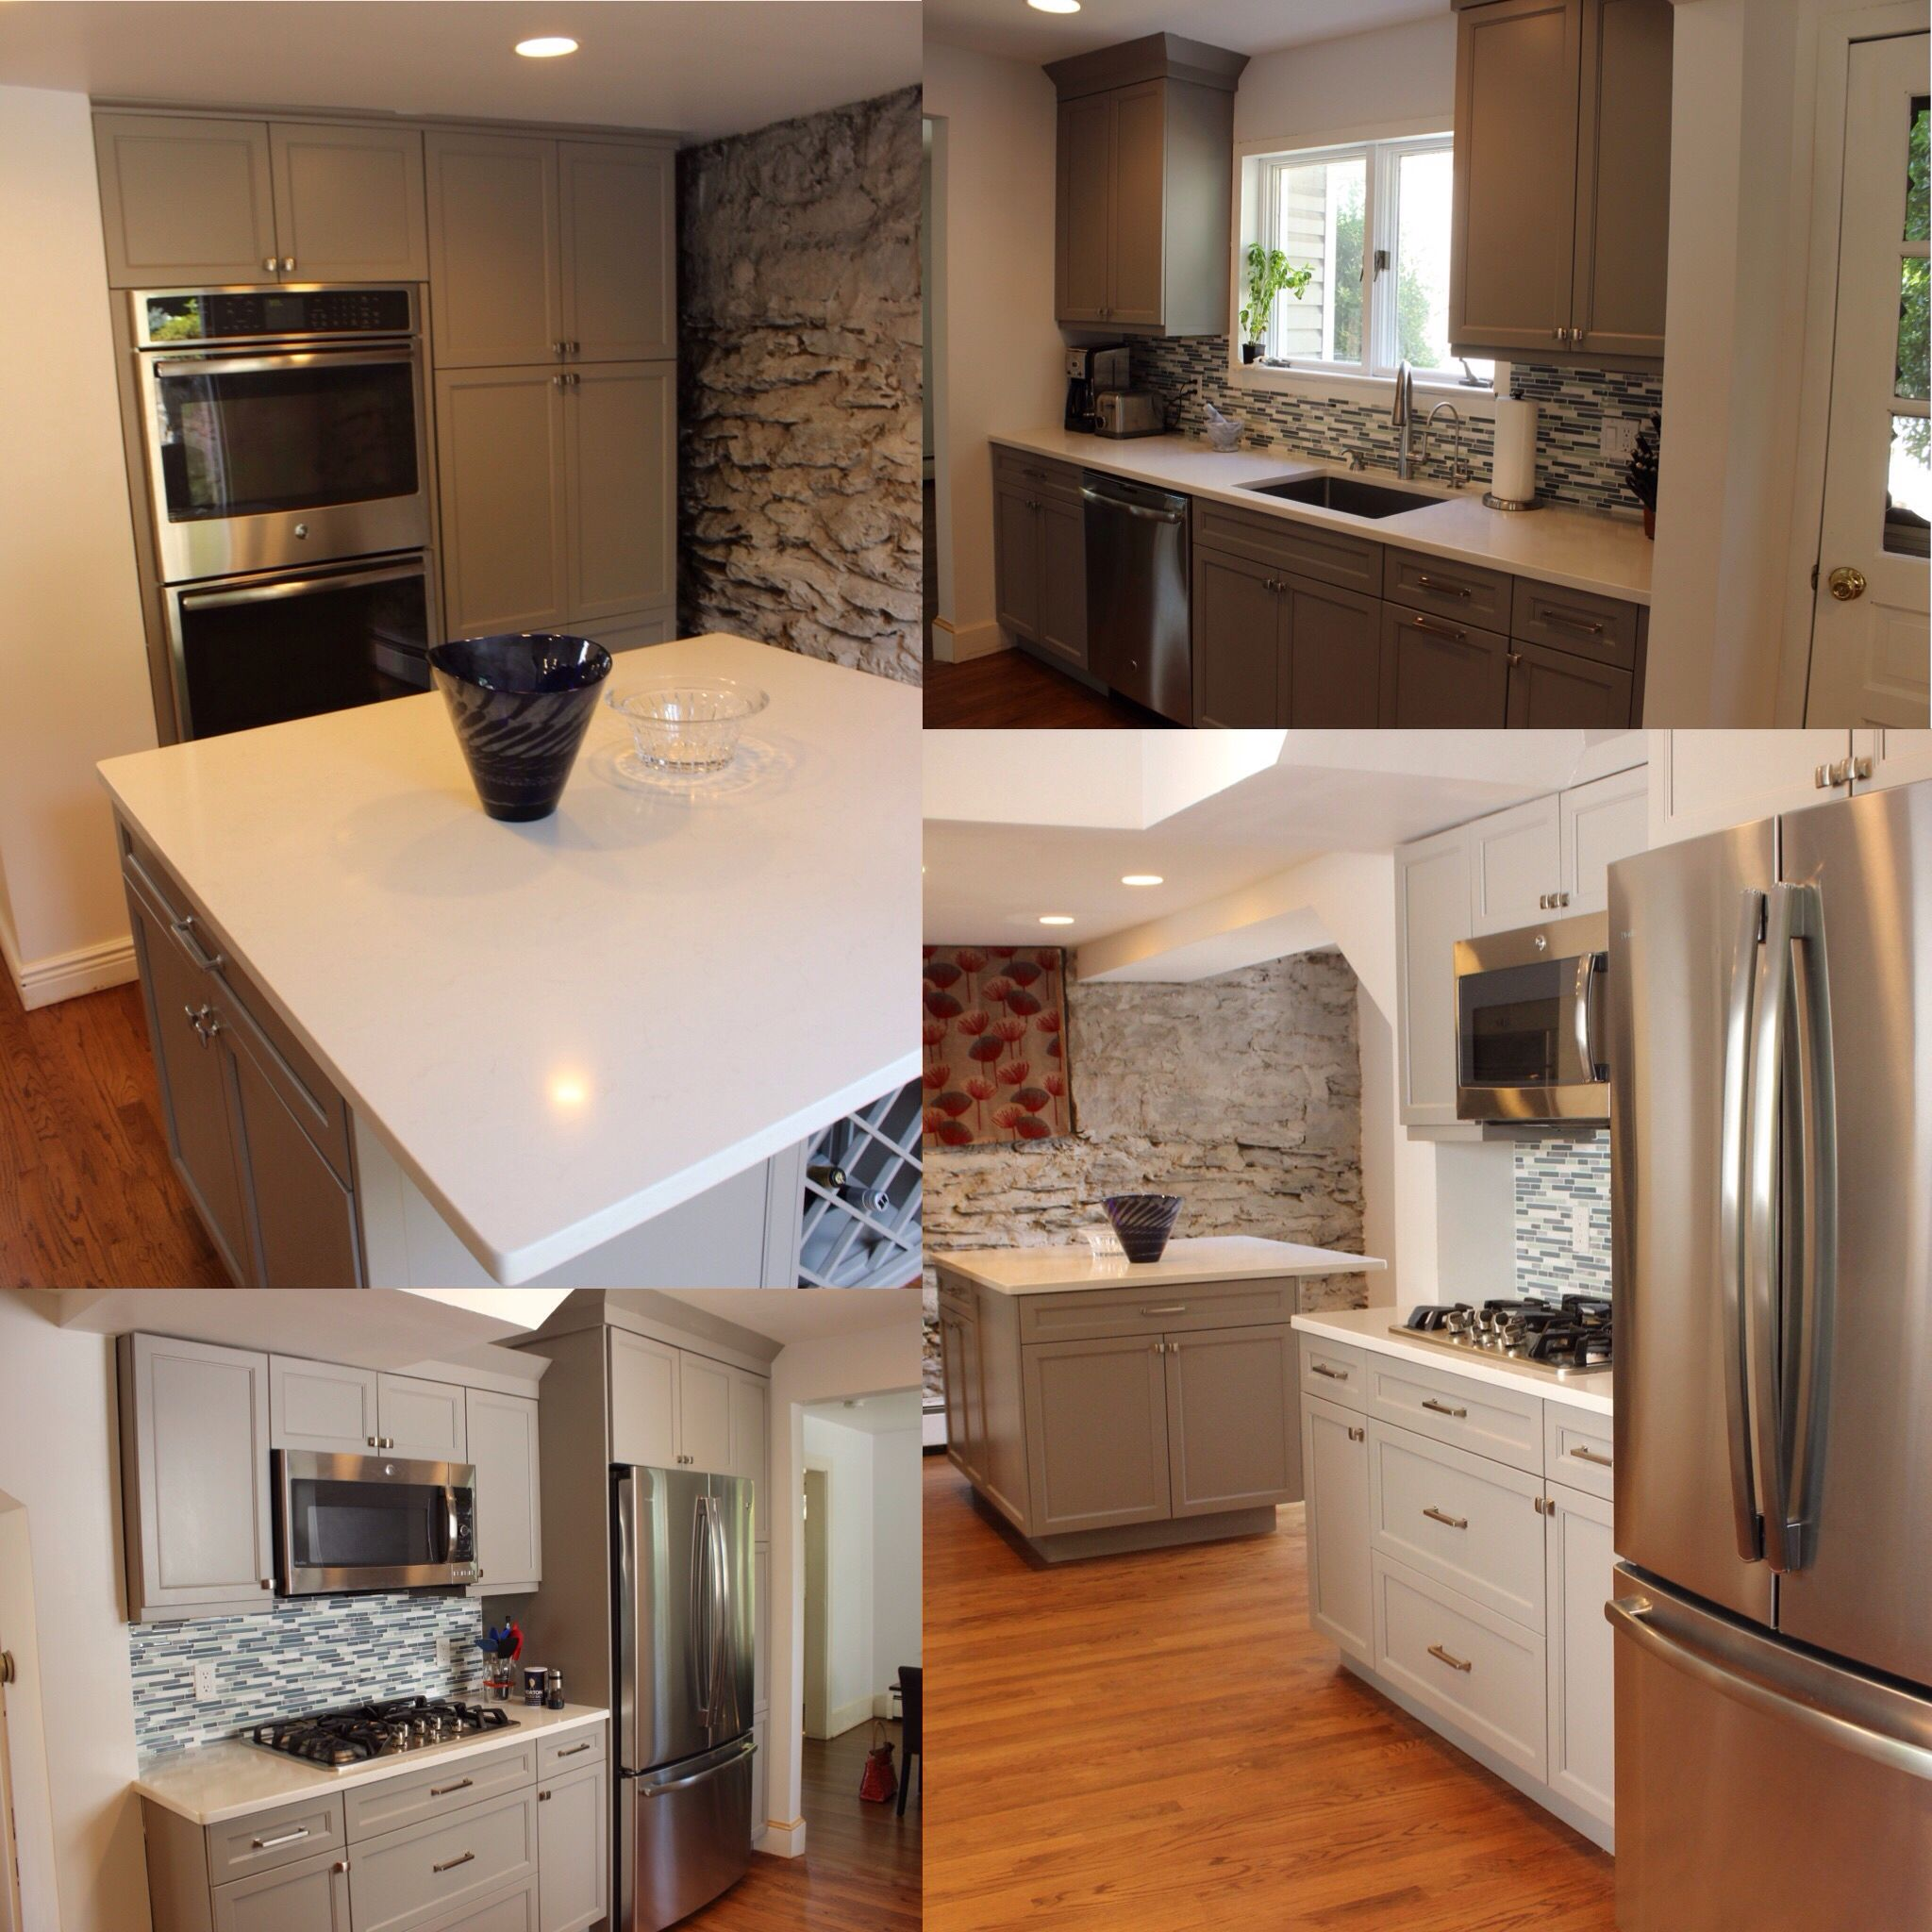 Take A Look At This Beautiful Kitchen Remodel That Was Recently Completed With The Help Of Majestic Kitchens Kitchen Remodel Beautiful Kitchens Kitchen Design